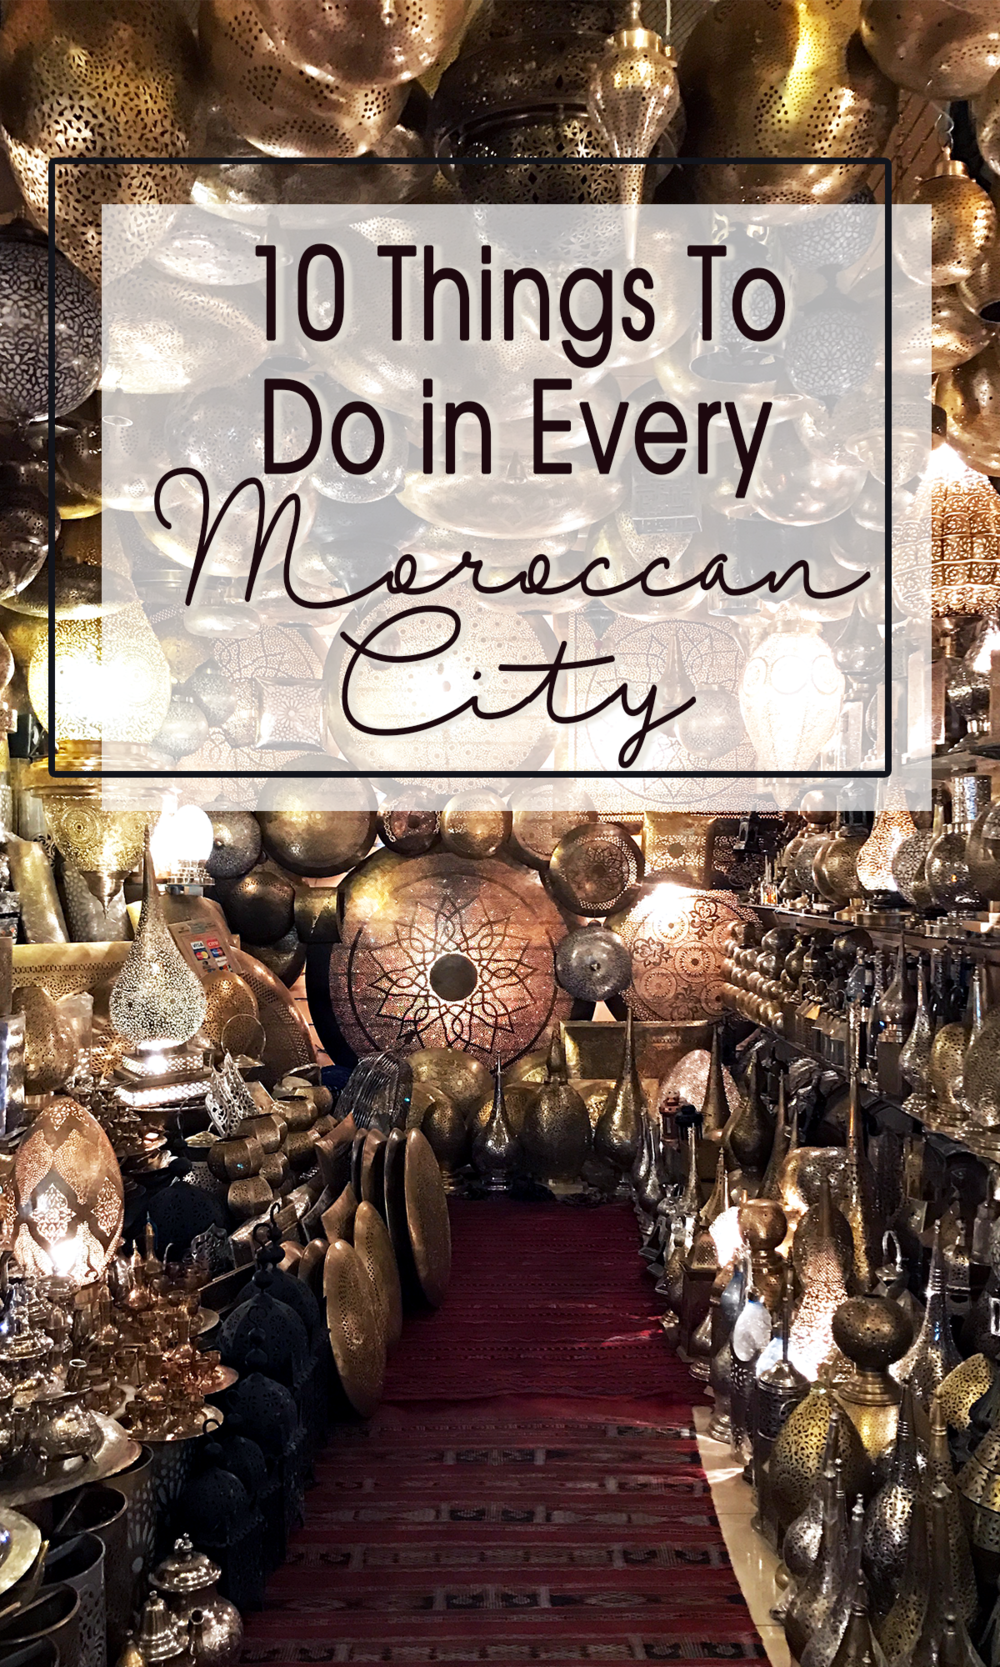 Travel Morocco | Things to do in Moroccan Cities like Marrakesh, Fez and Casablanca